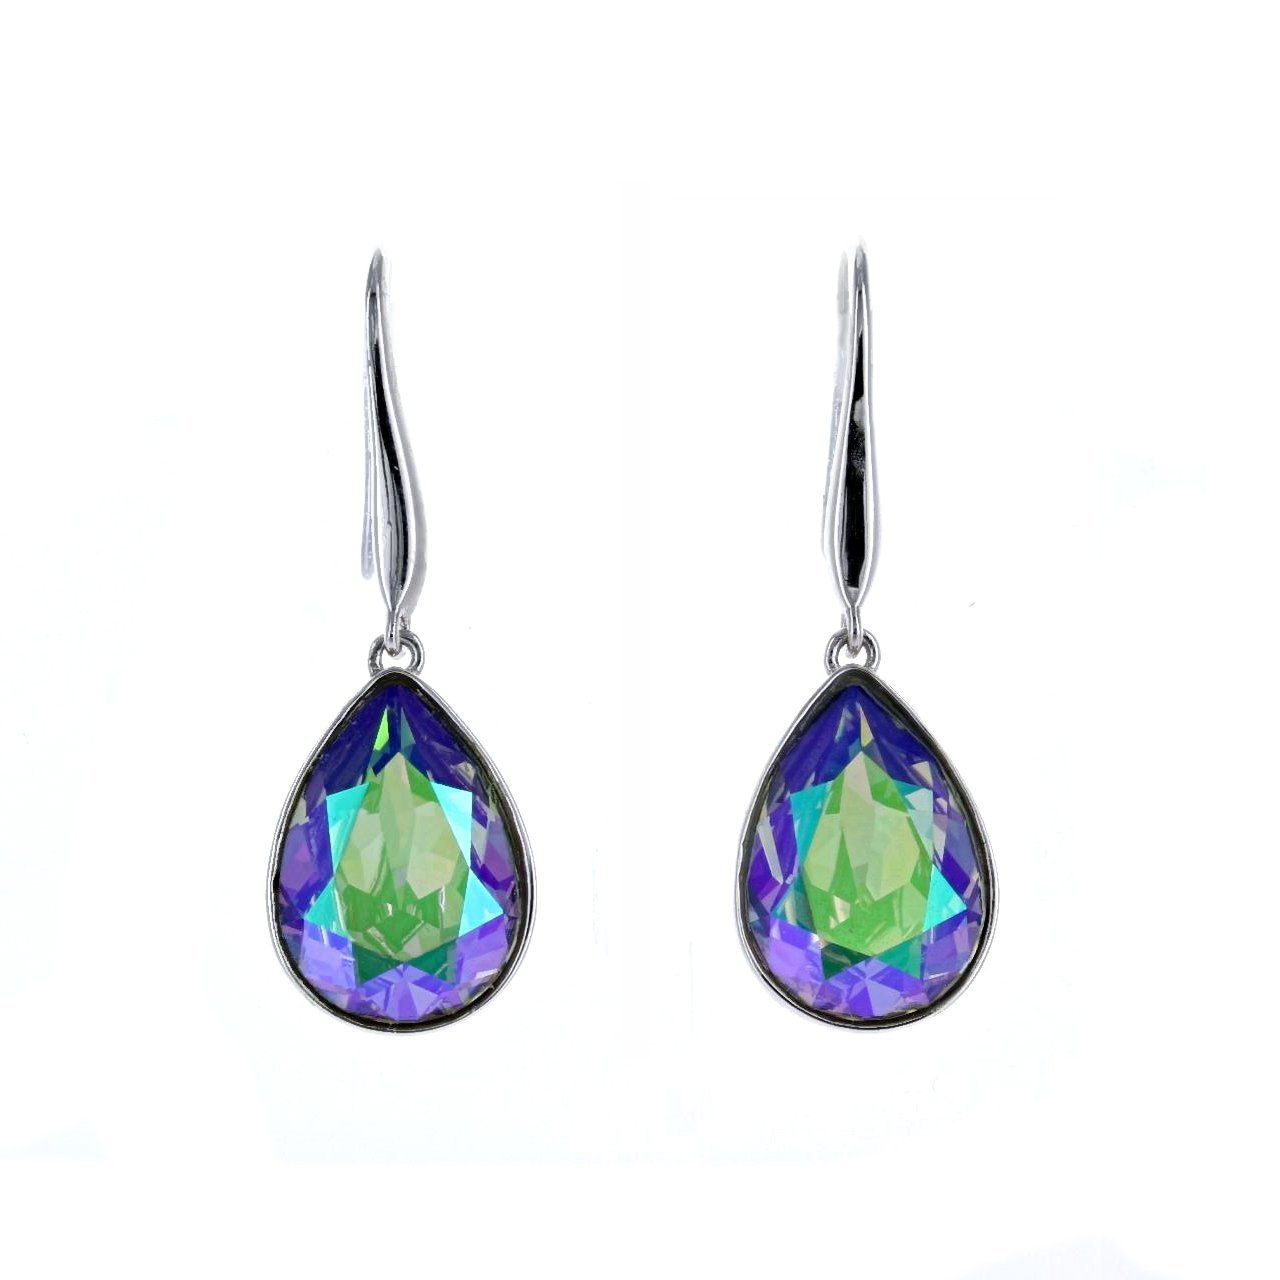 Crystal Collection Earrings Color / Silver Swarovski Crystal Paradise Shine Teardrop Earrings